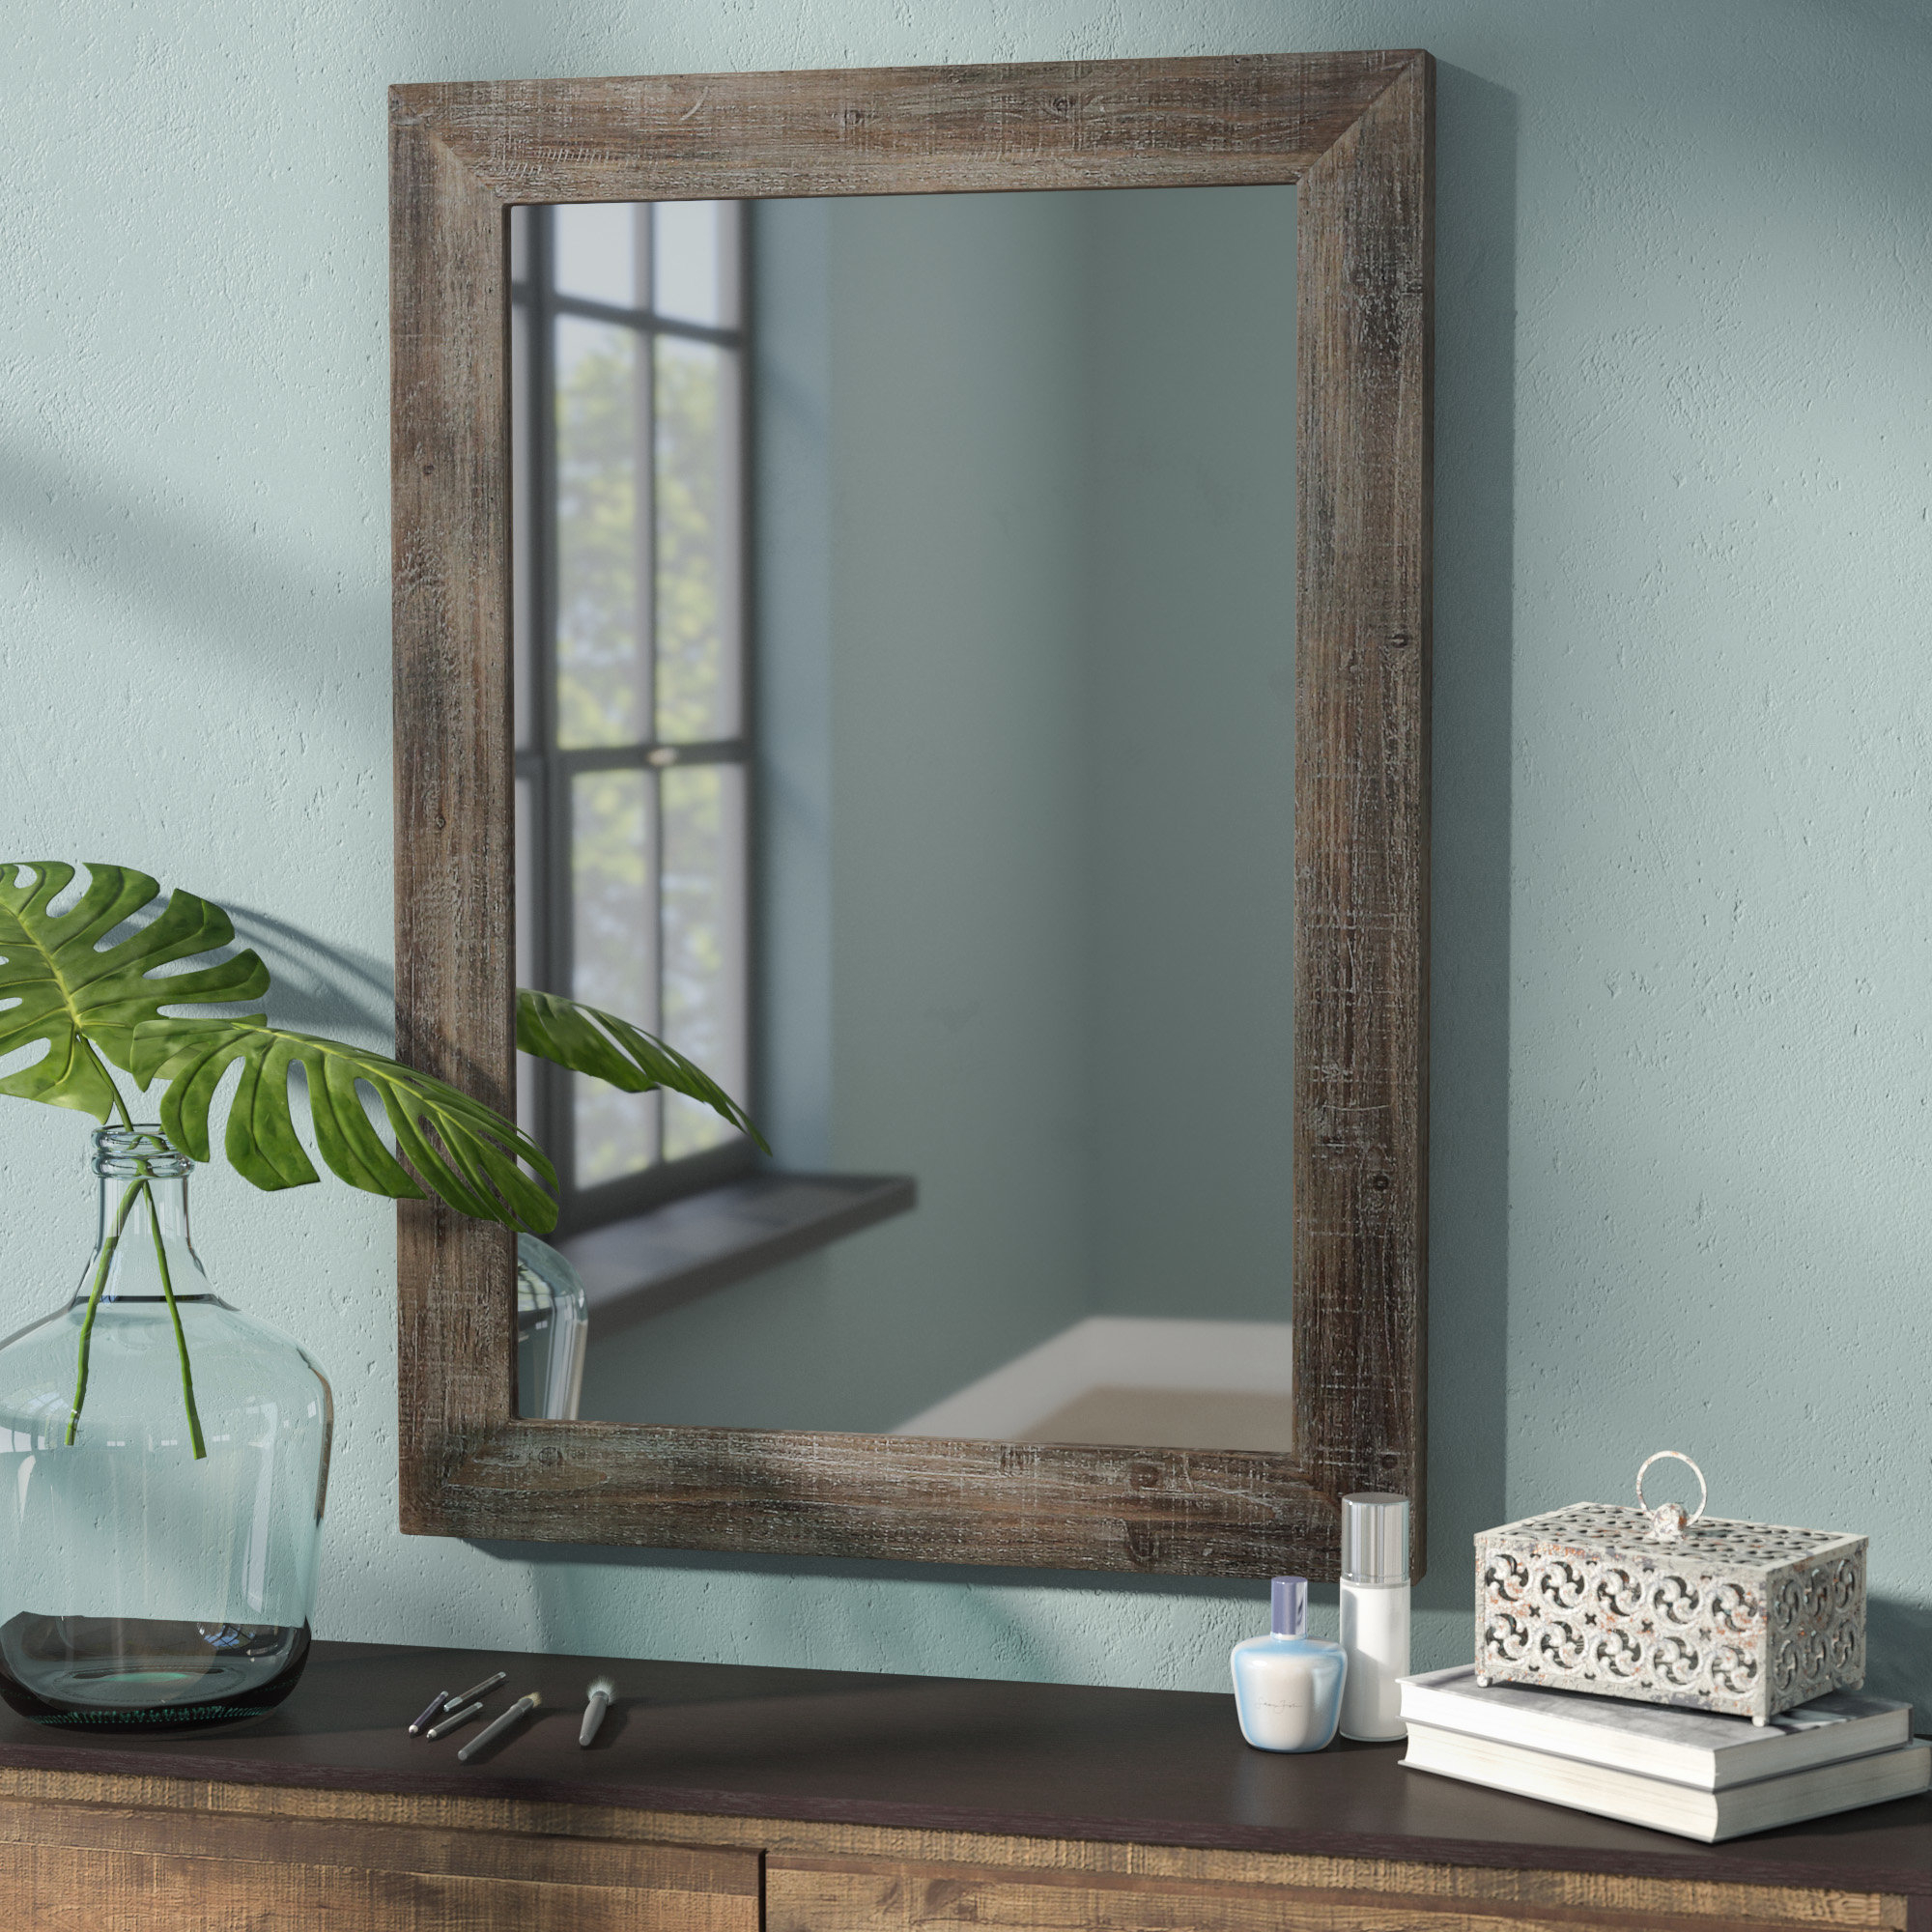 Rectangle Wood Accent Wall Mirror Regarding Rectangle Accent Wall Mirrors (Gallery 6 of 30)